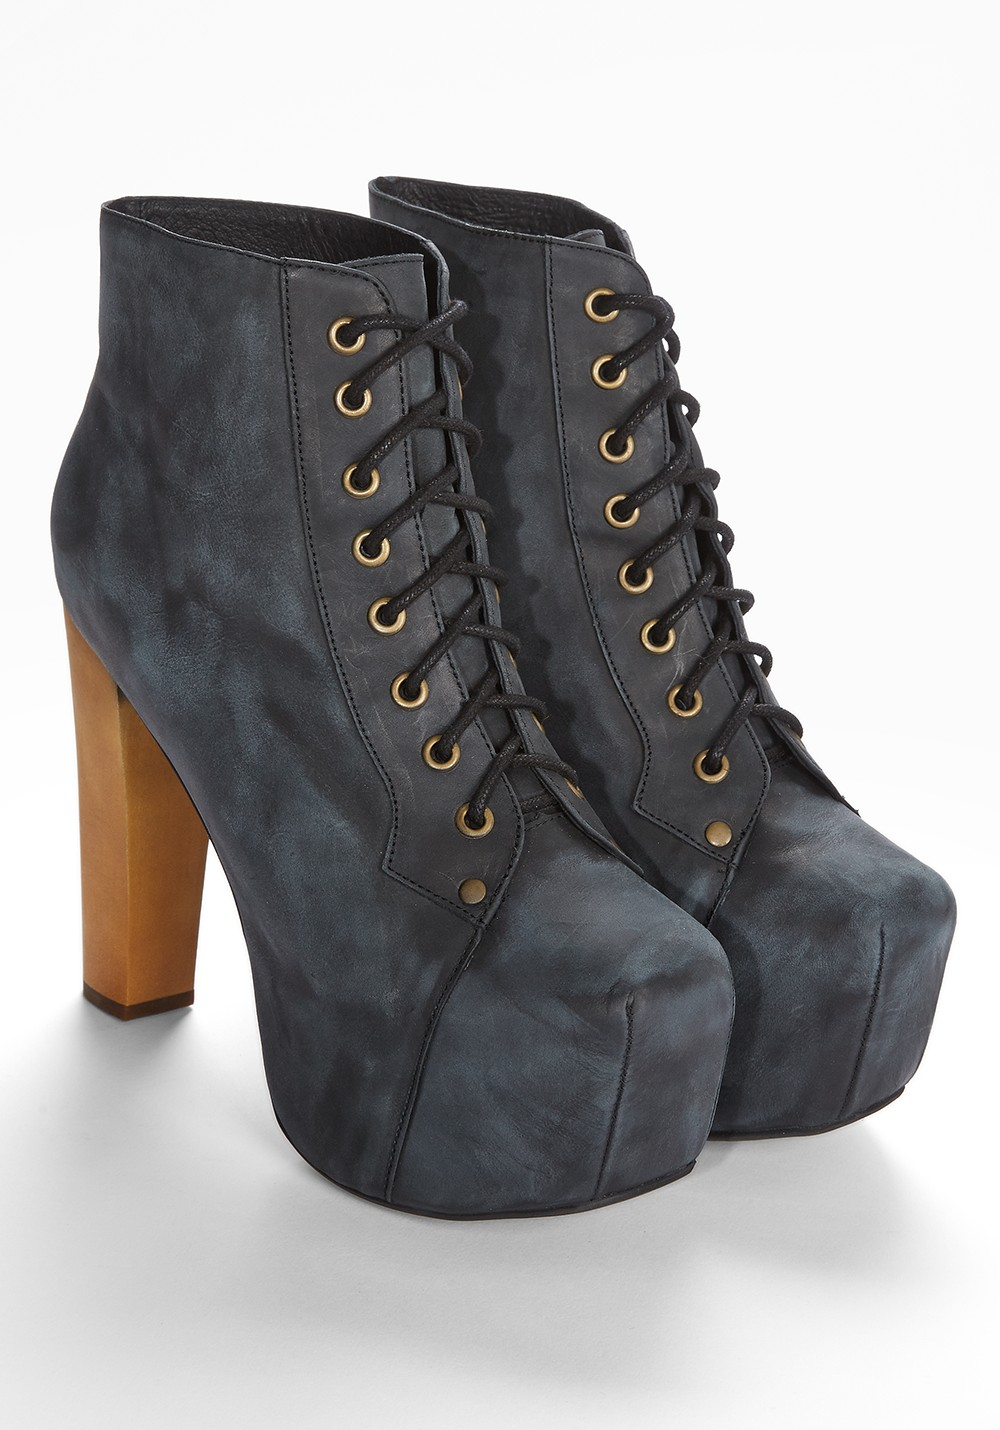 JEFFREY CAMPBELL Lita Distressed Leather Jeffrey Campbell | frontlineshop.com